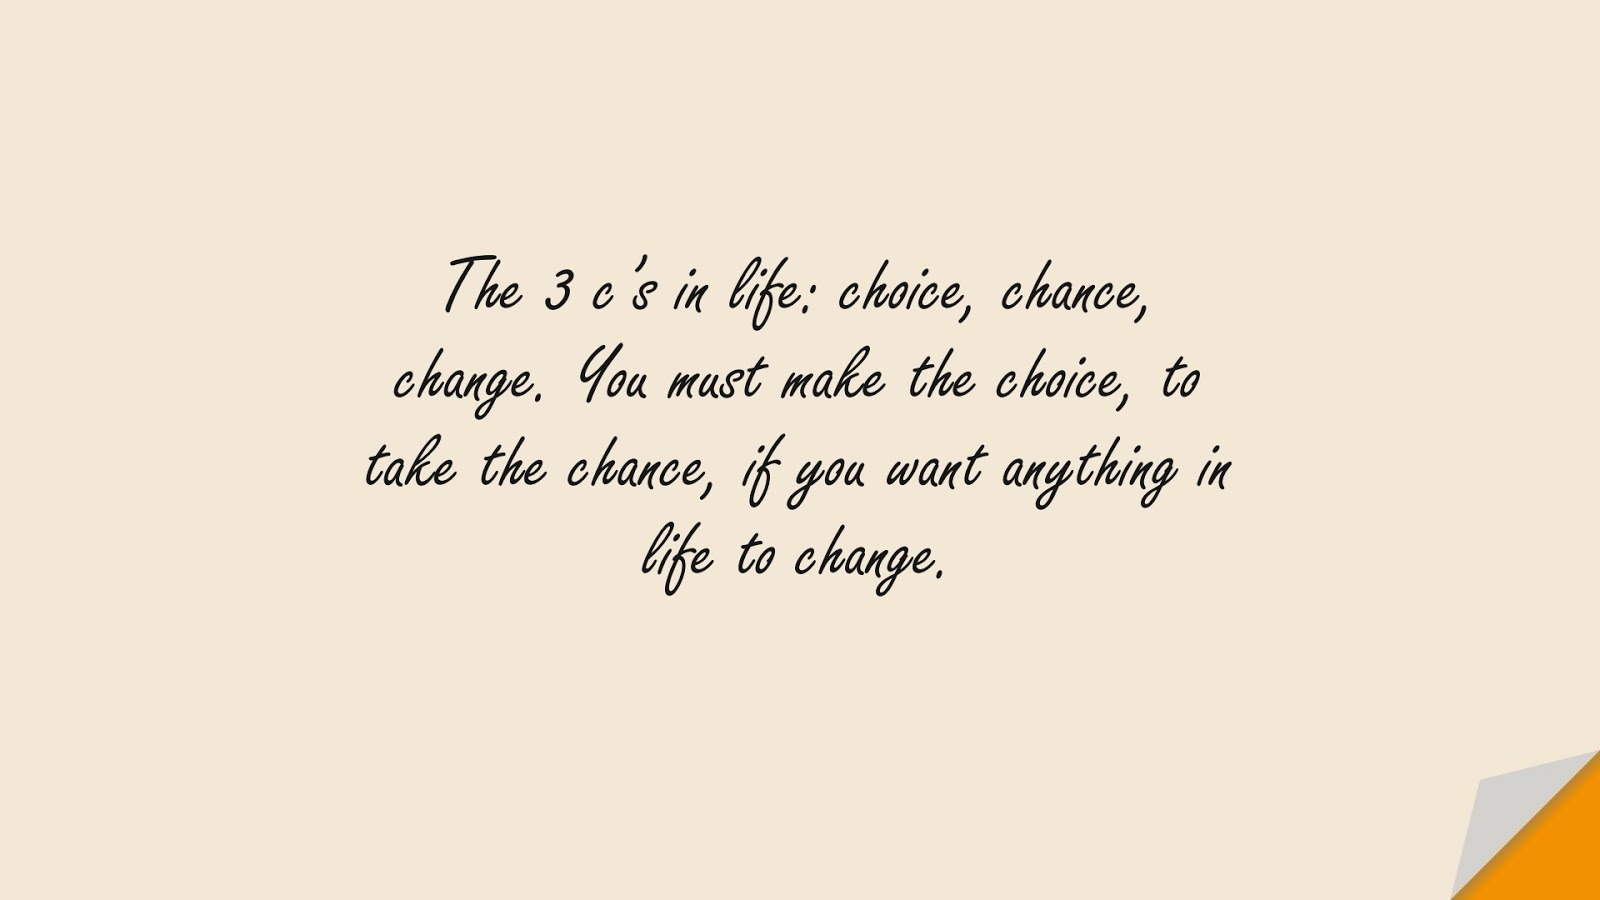 The 3 c's in life: choice, chance, change. You must make the choice, to take the chance, if you want anything in life to change.FALSE